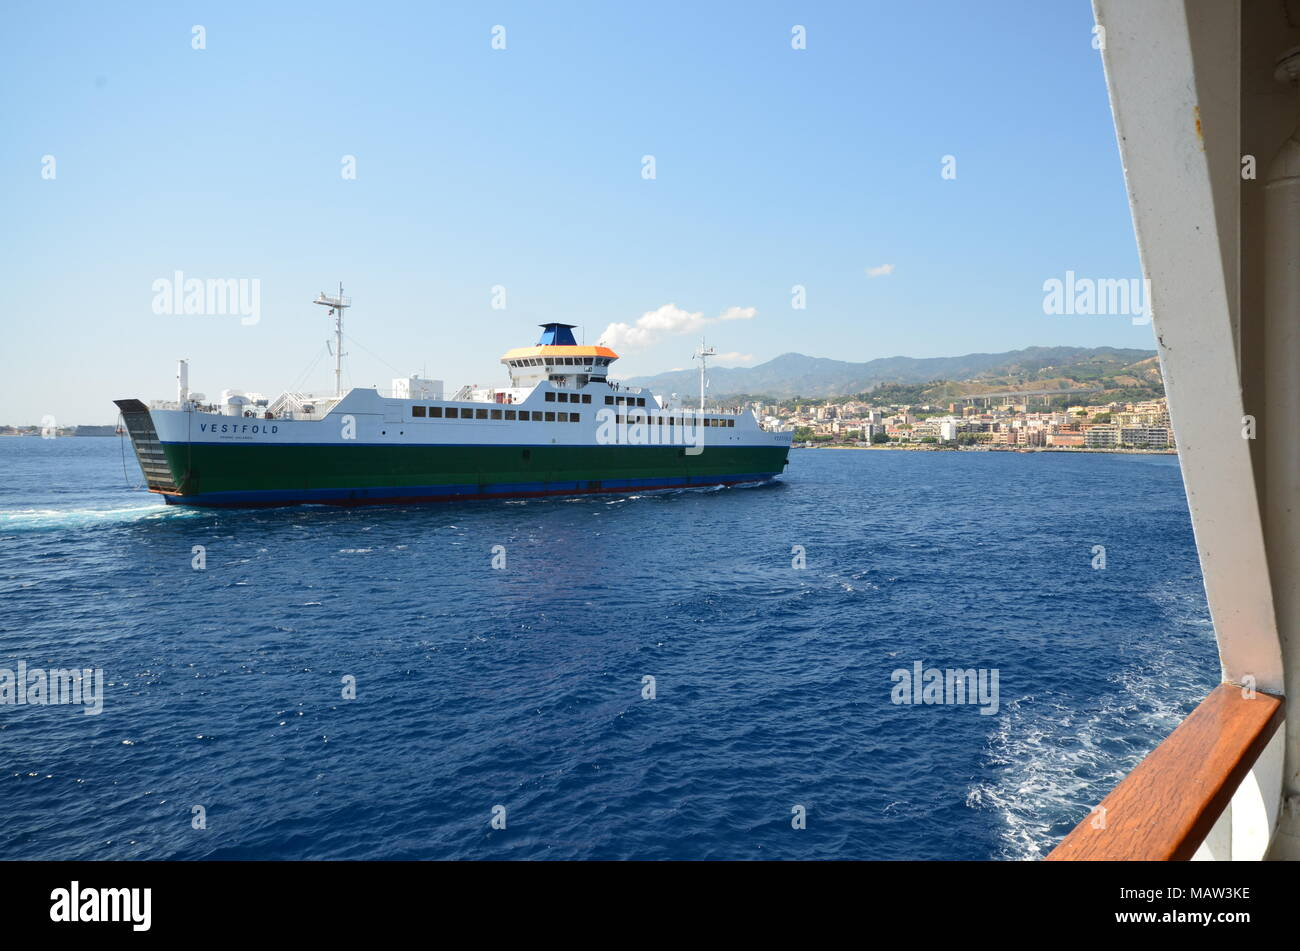 Messina, Italy, Sicily August 15 2015. After queuing the car, embark the car on the ferry that connects Italy to Sicily. - Stock Image